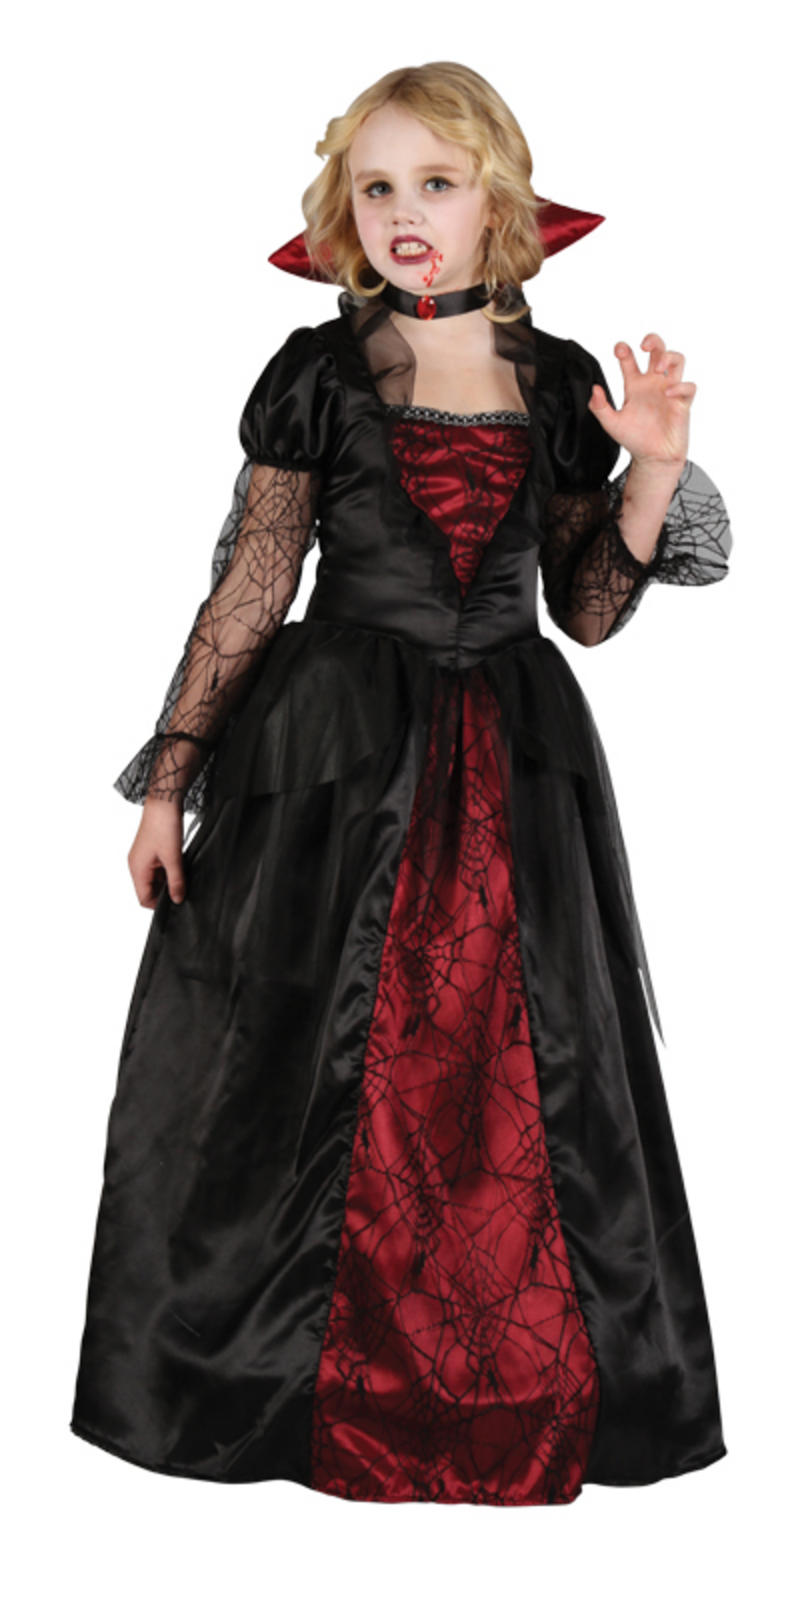 Popular  You Dish Out A Doityourself Vampire Fancy Dress, For That Balmy, Dangerous Creature Of The Night Look Check Out The Ideas Assigned Here Click About The Images For Any Better Search VAMPIRE Outfits FOR WOMEN Quite A Very Few